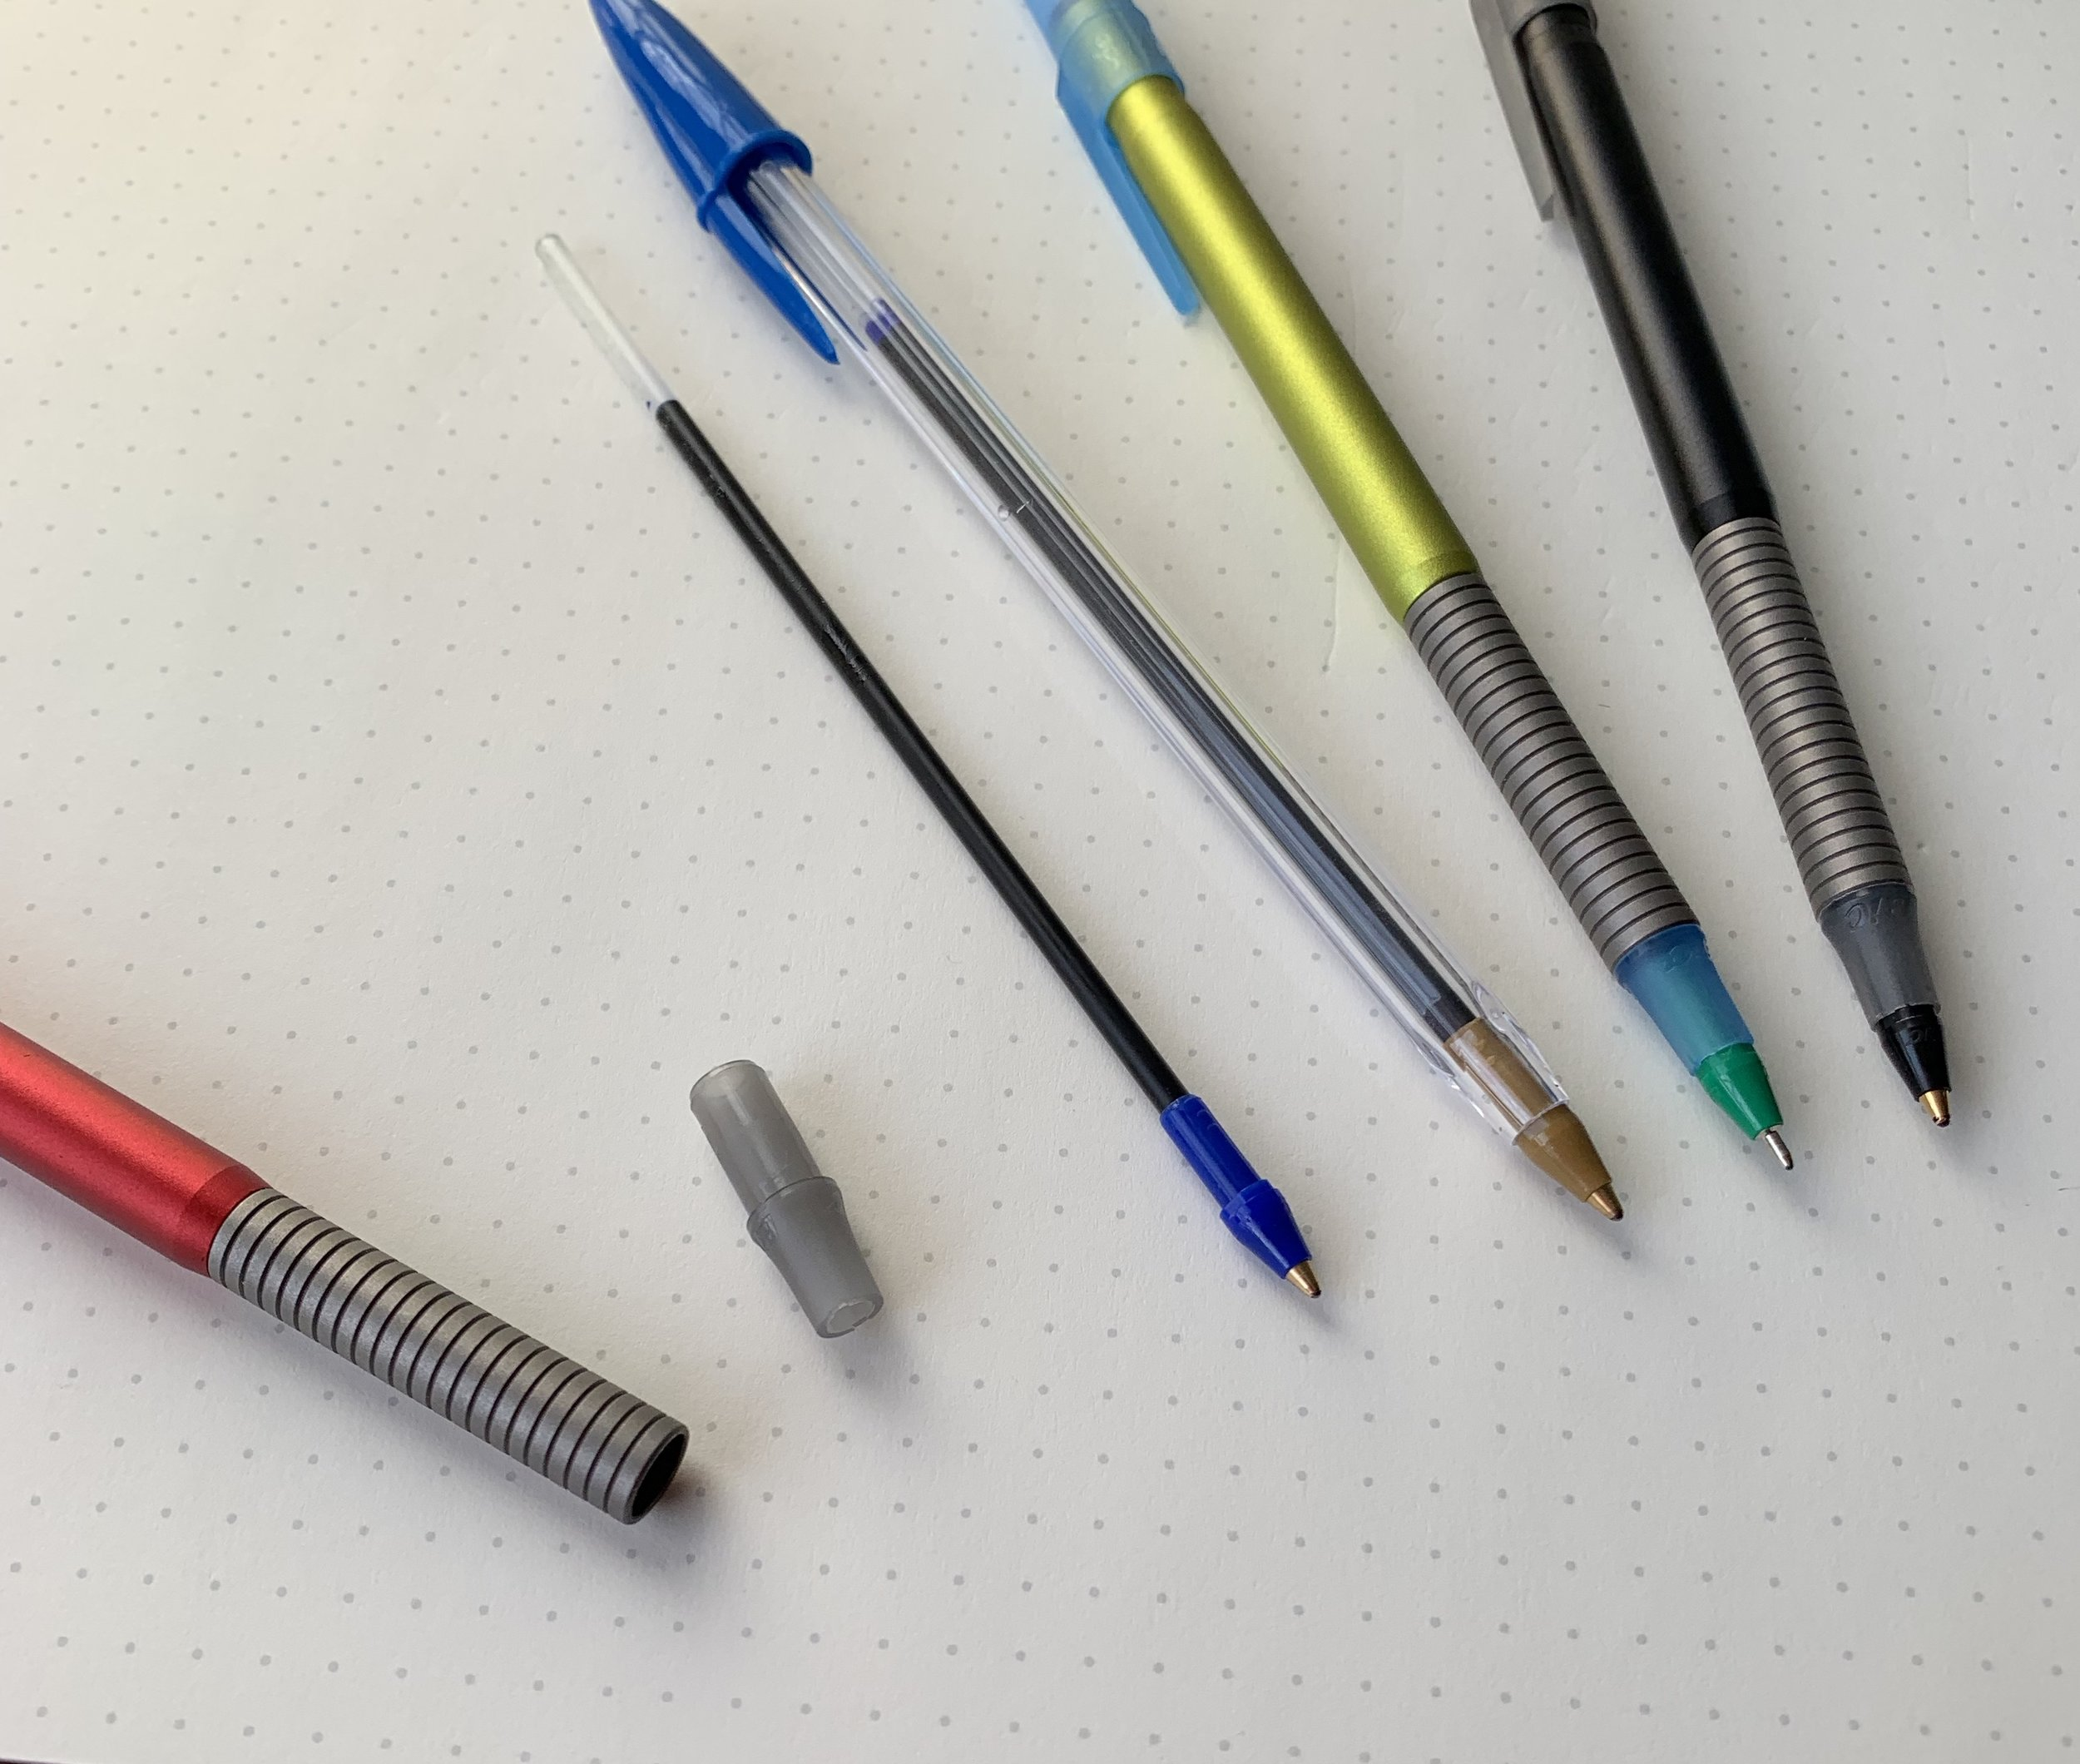 """How to disassemble a Baux Pen to incorporate the refill: If you want to use the refill from a Bic Cristal, you will need to borrow the """"collar"""" (pictured second from left) from a Bic Stic to seat the Cristal refill in the Baux Pen. You can then use the ultra fine ballpoint refills from pens like the  Bic Cristal """"Xtra Precision"""" , in all their multicolor glory."""